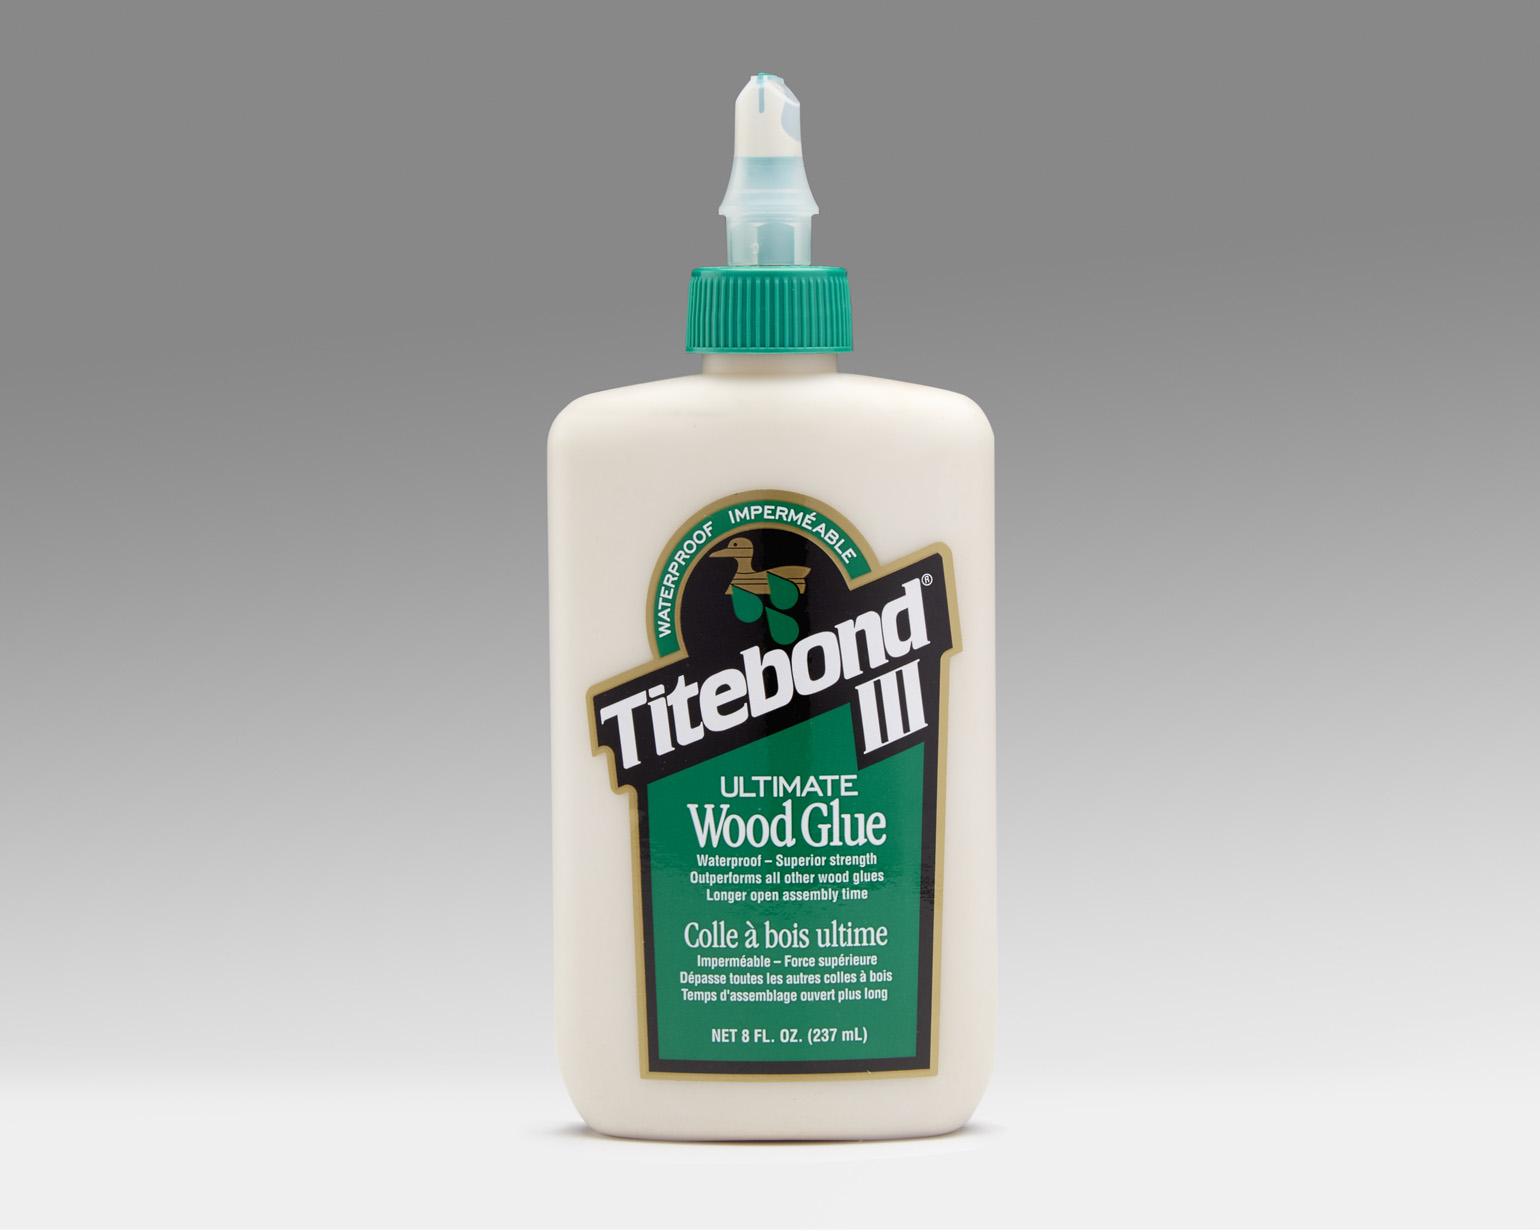 glu08-titebond-iii-glue-8oz-1540.jpg